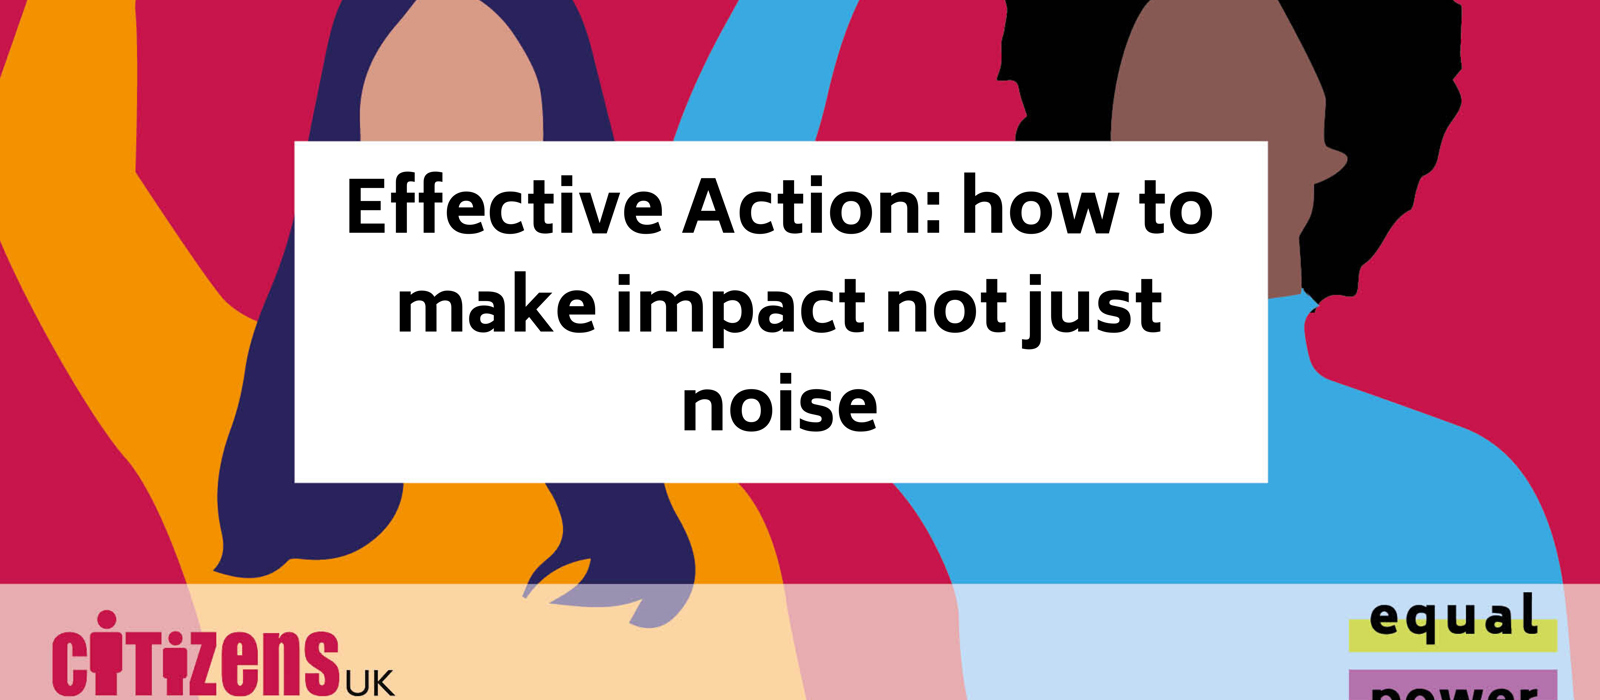 Effective Action: how to make impact not just noise